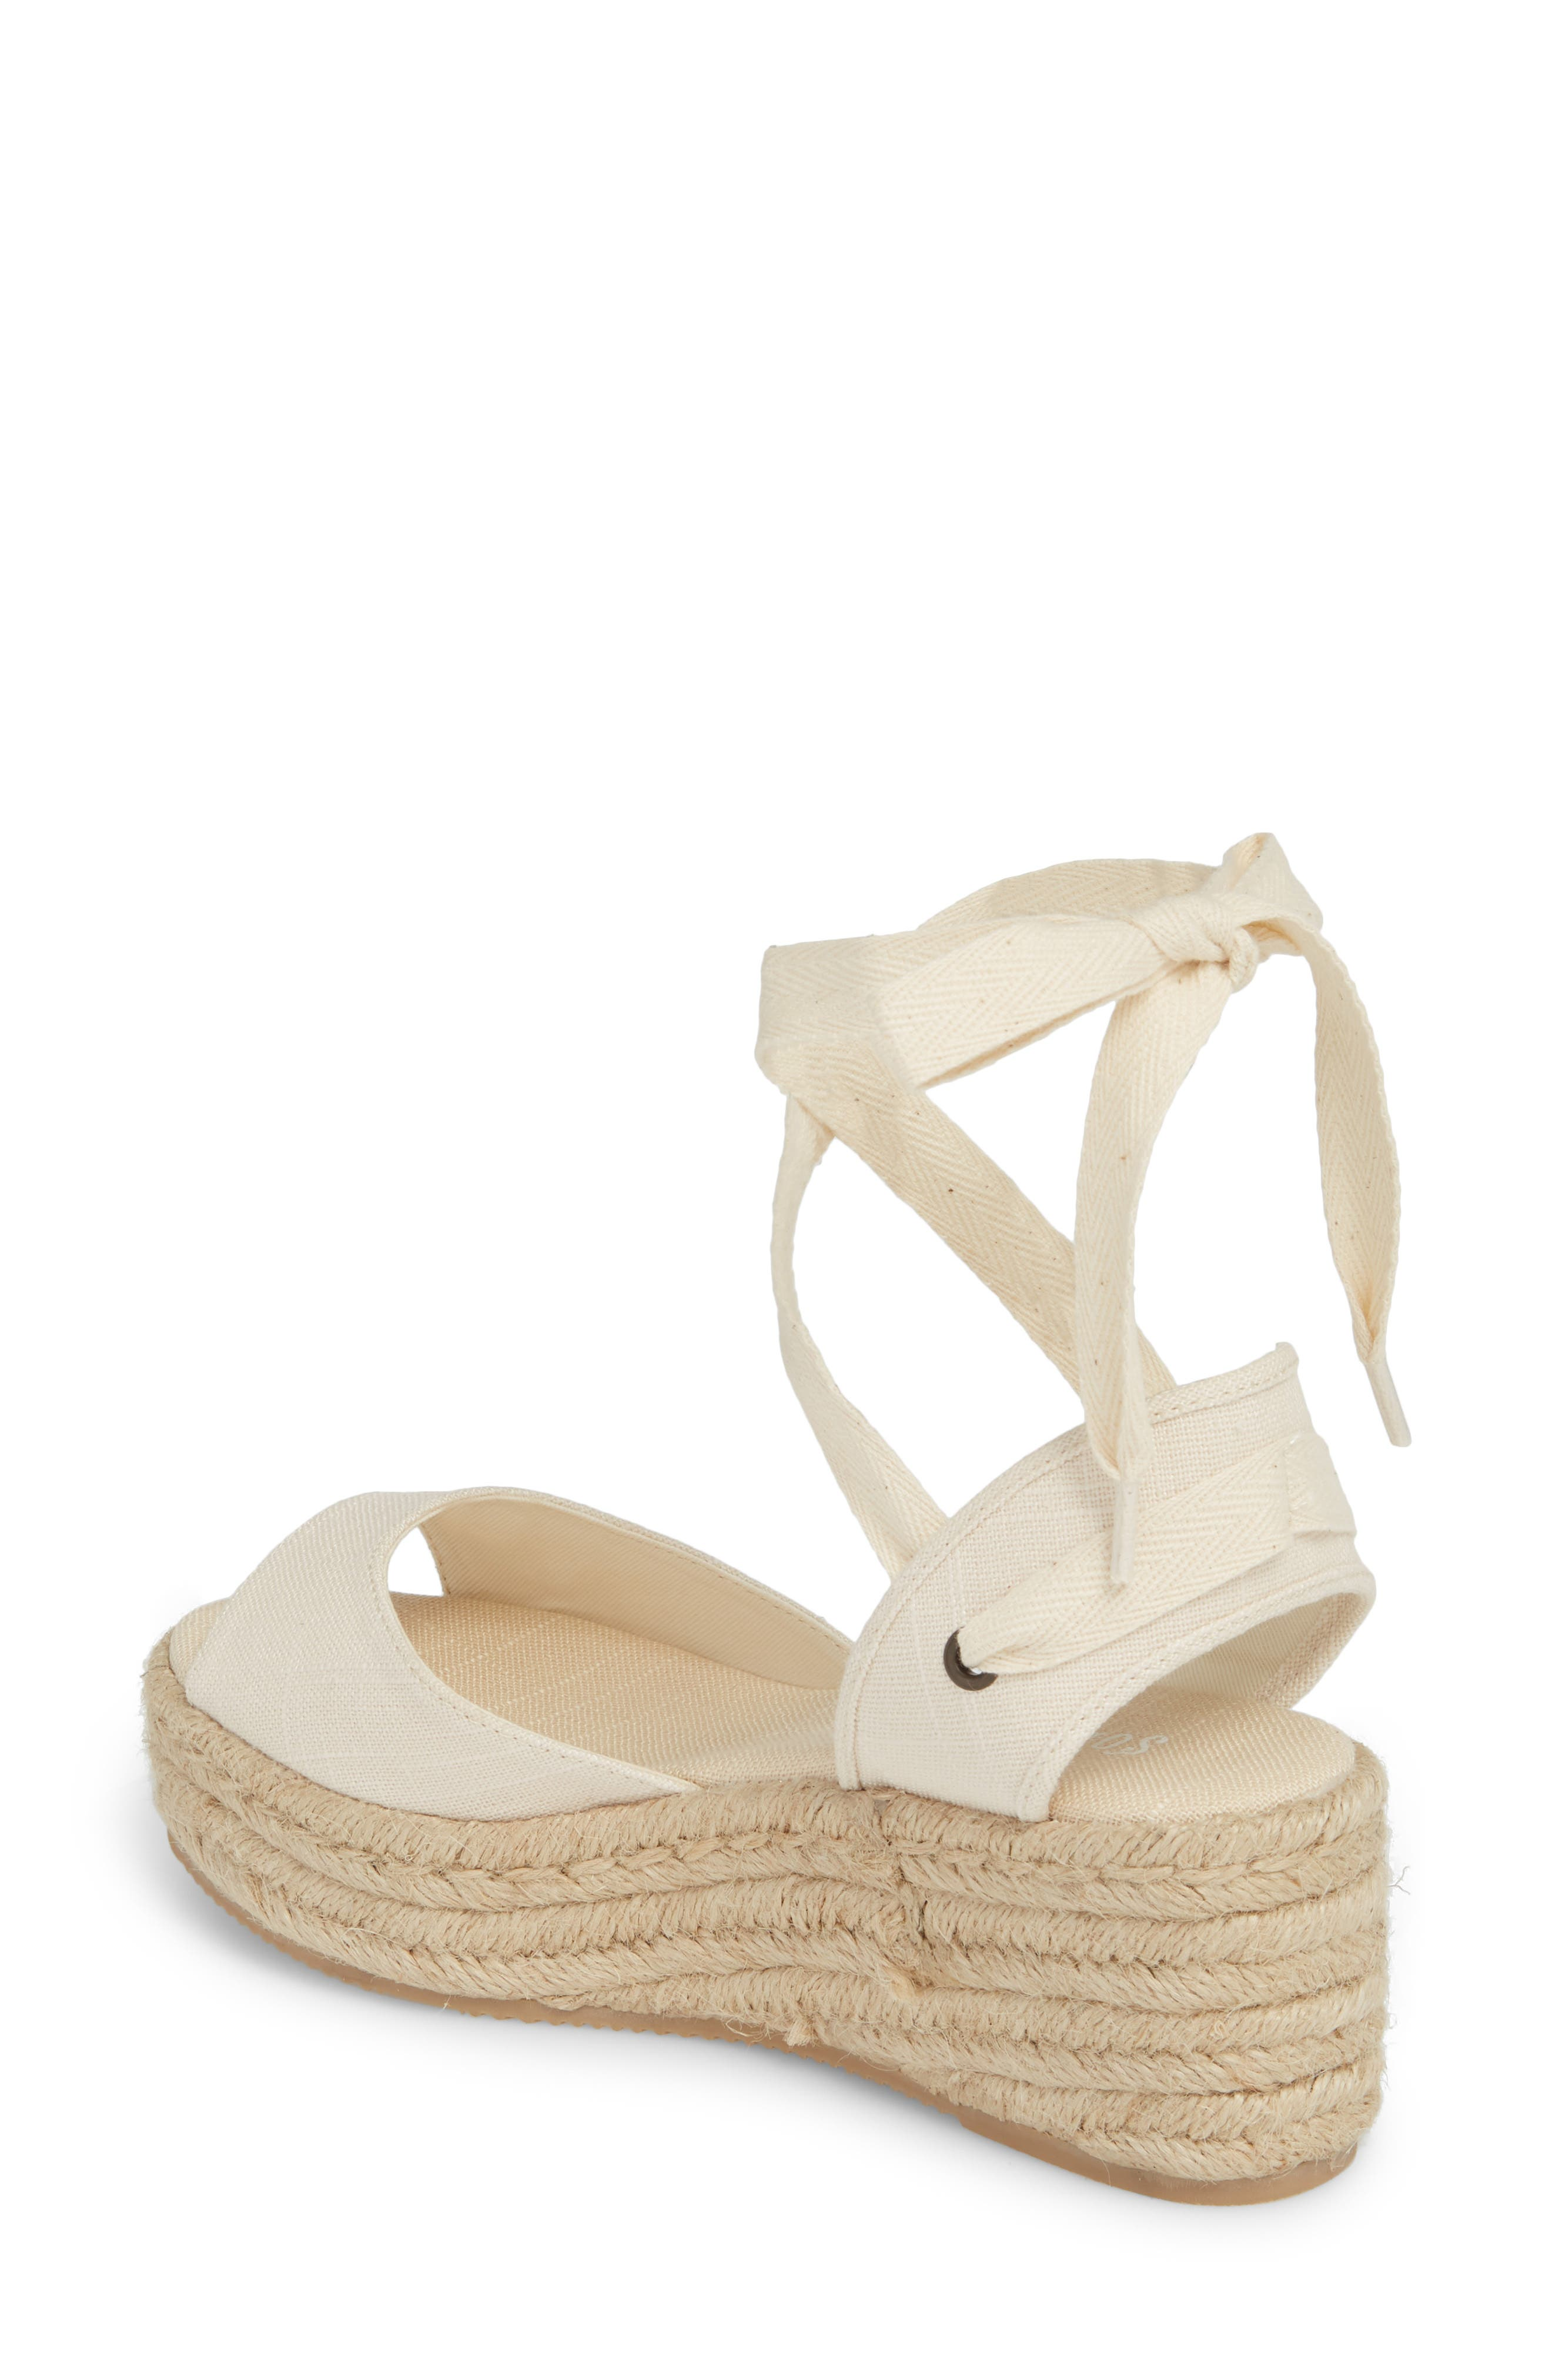 Espadrille Platform Sandal,                             Alternate thumbnail 2, color,                             BLUSH FABRIC